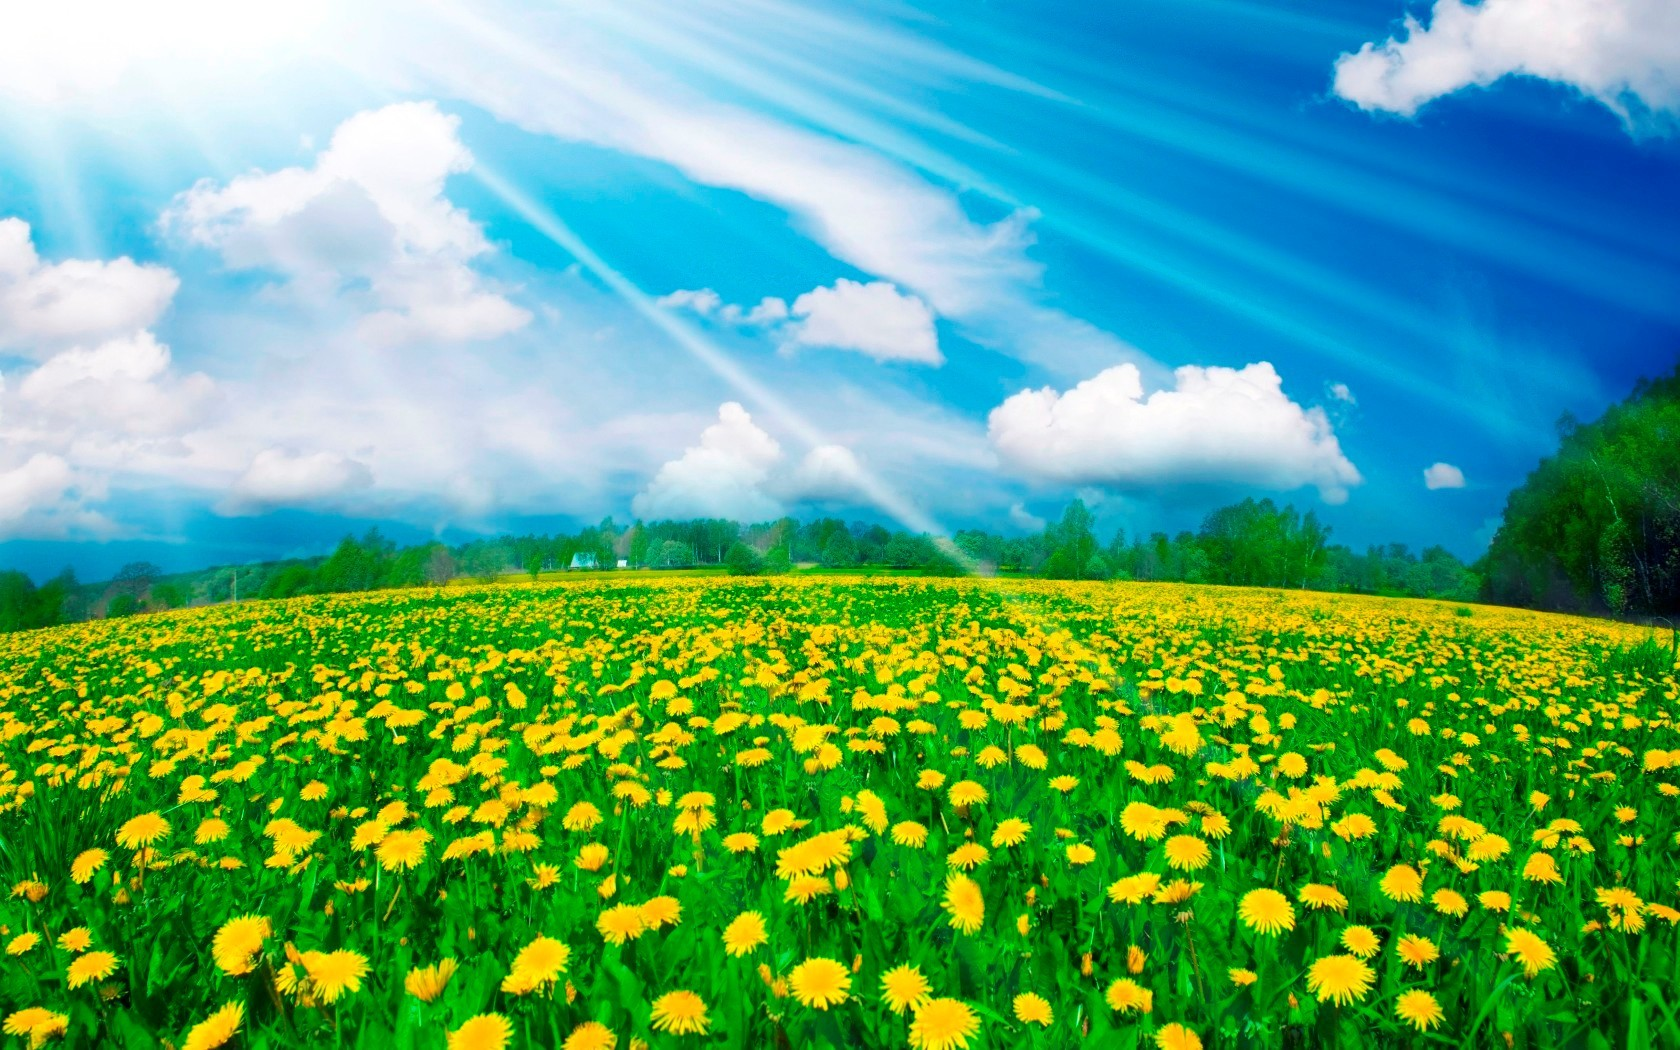 48524 download wallpaper Plants, Nature, Landscape, Fields screensavers and pictures for free